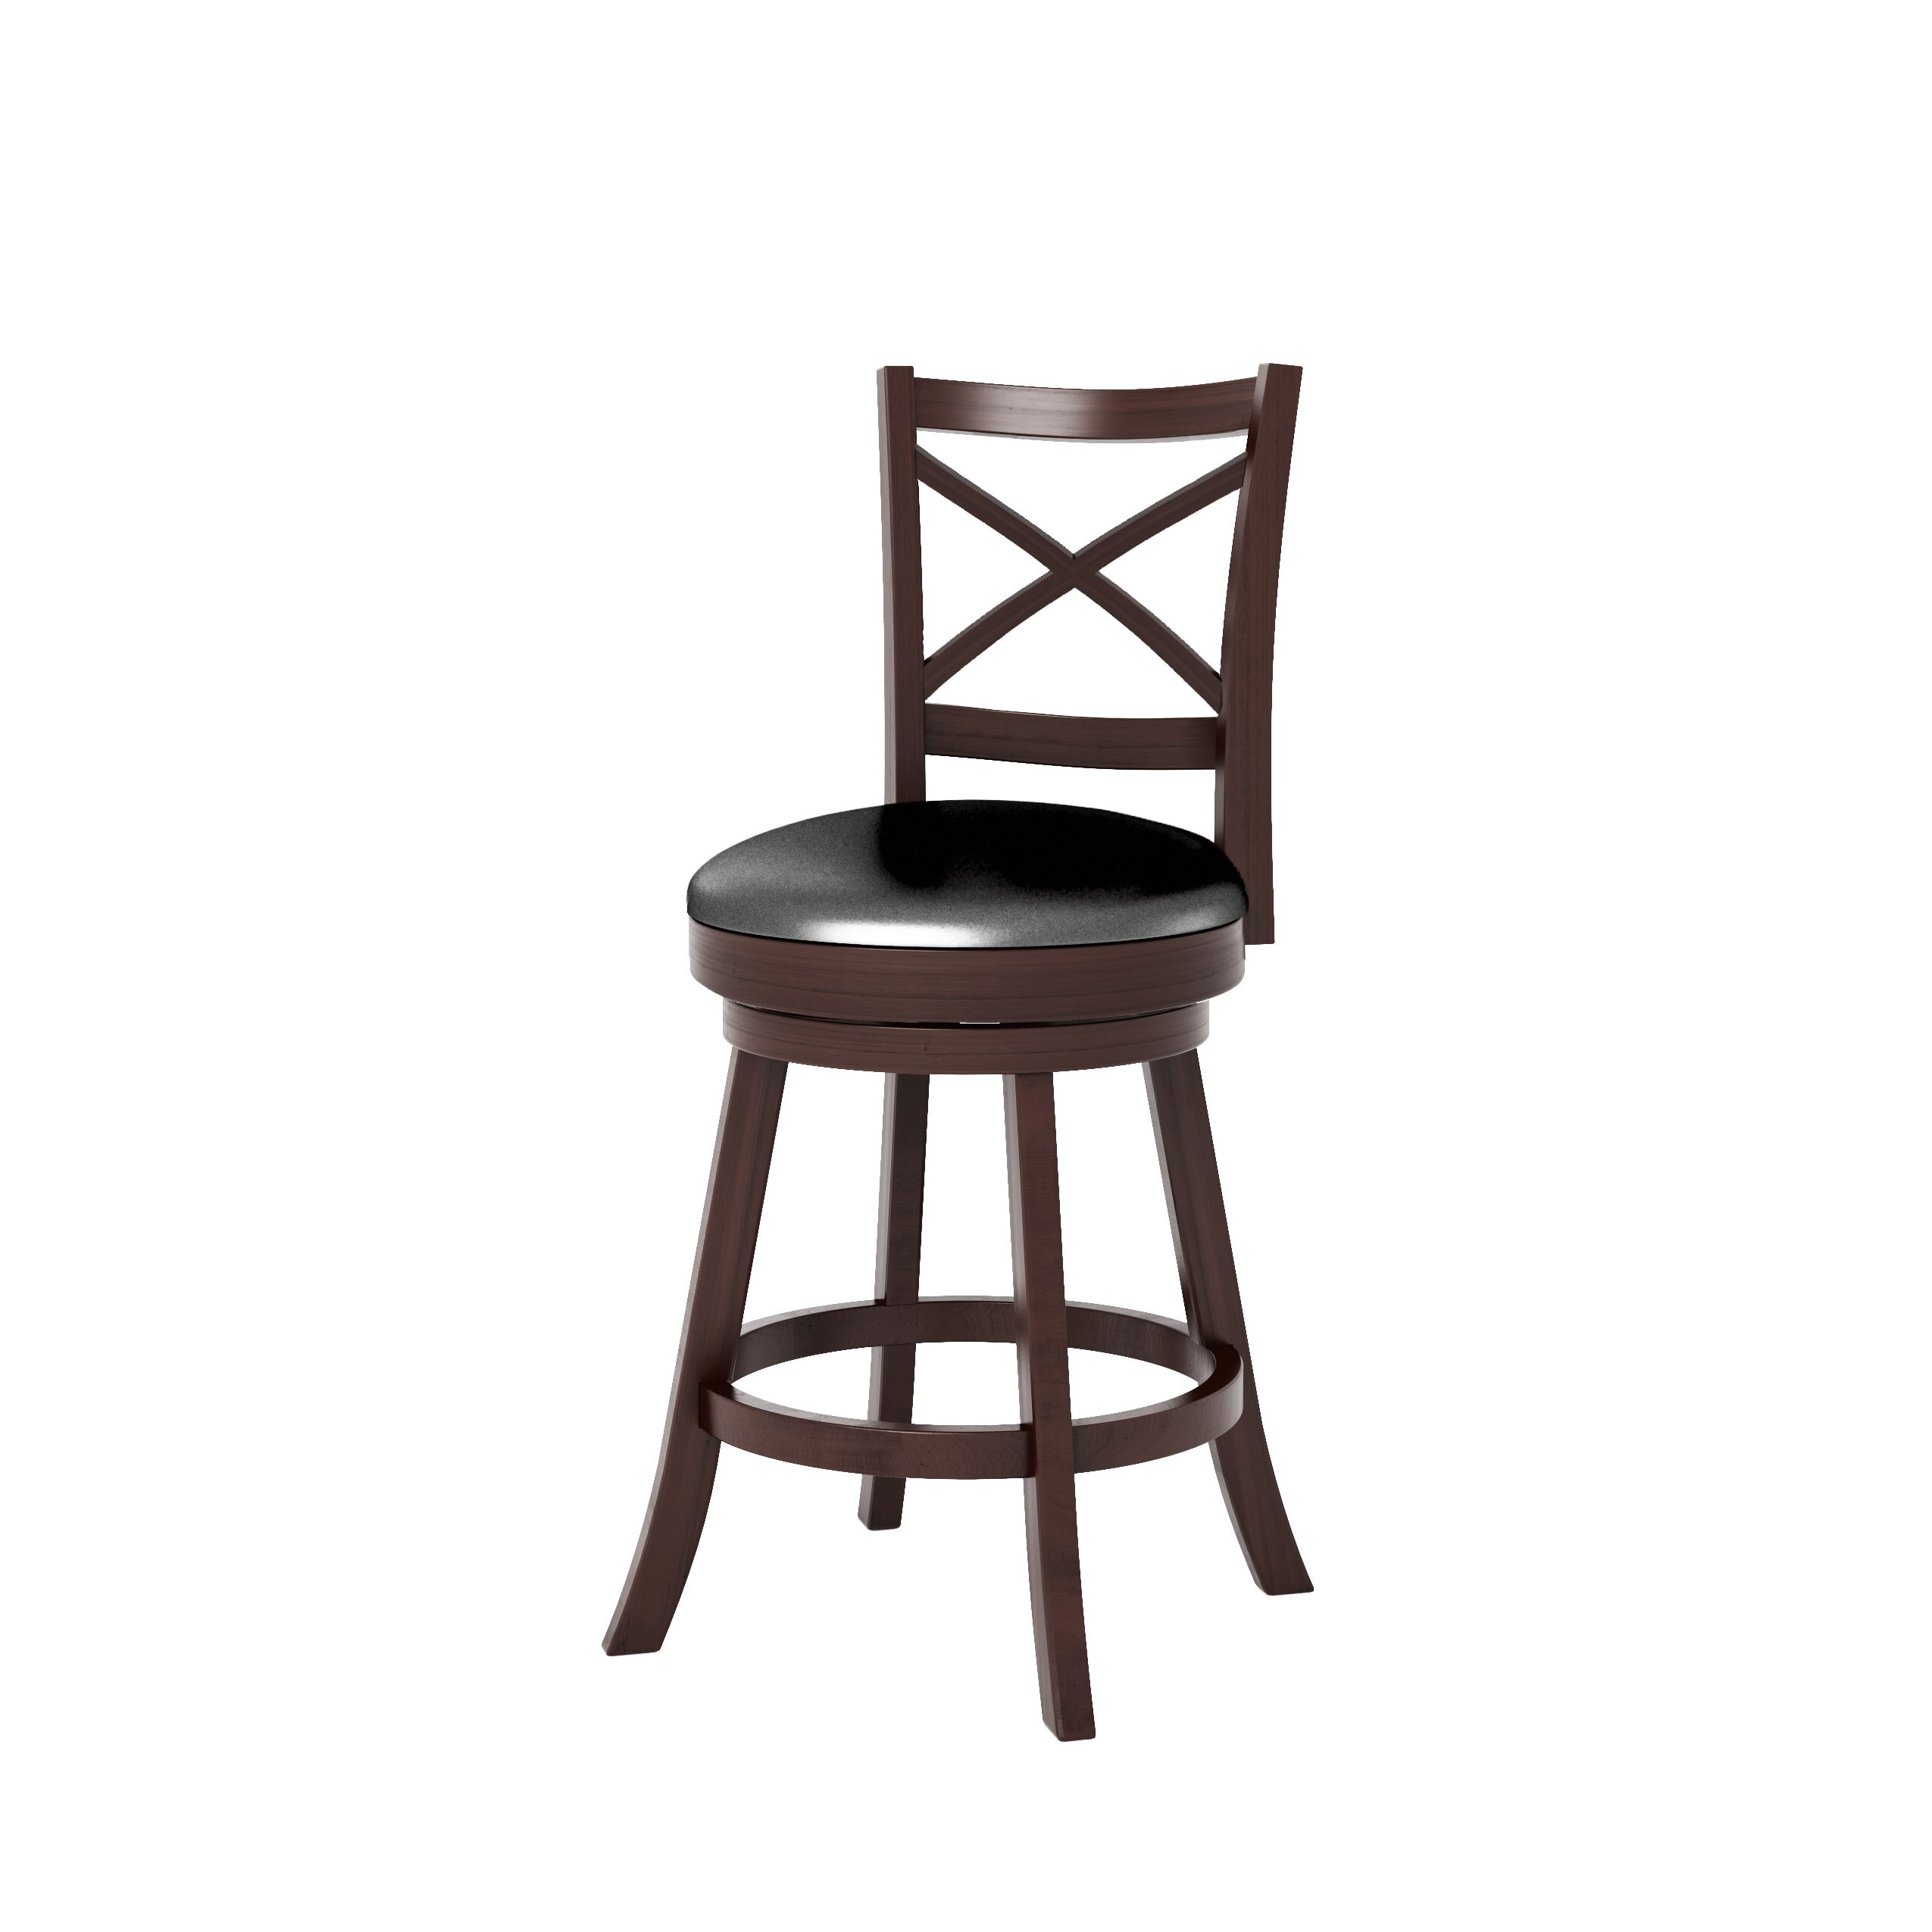 CorLiving 25quot Swivel Bar Stool amp Reviews Wayfair : 25 Swivel Bar Stool with Cushion CLIV1199 from www.wayfair.com size 2550 x 2550 jpeg 159kB